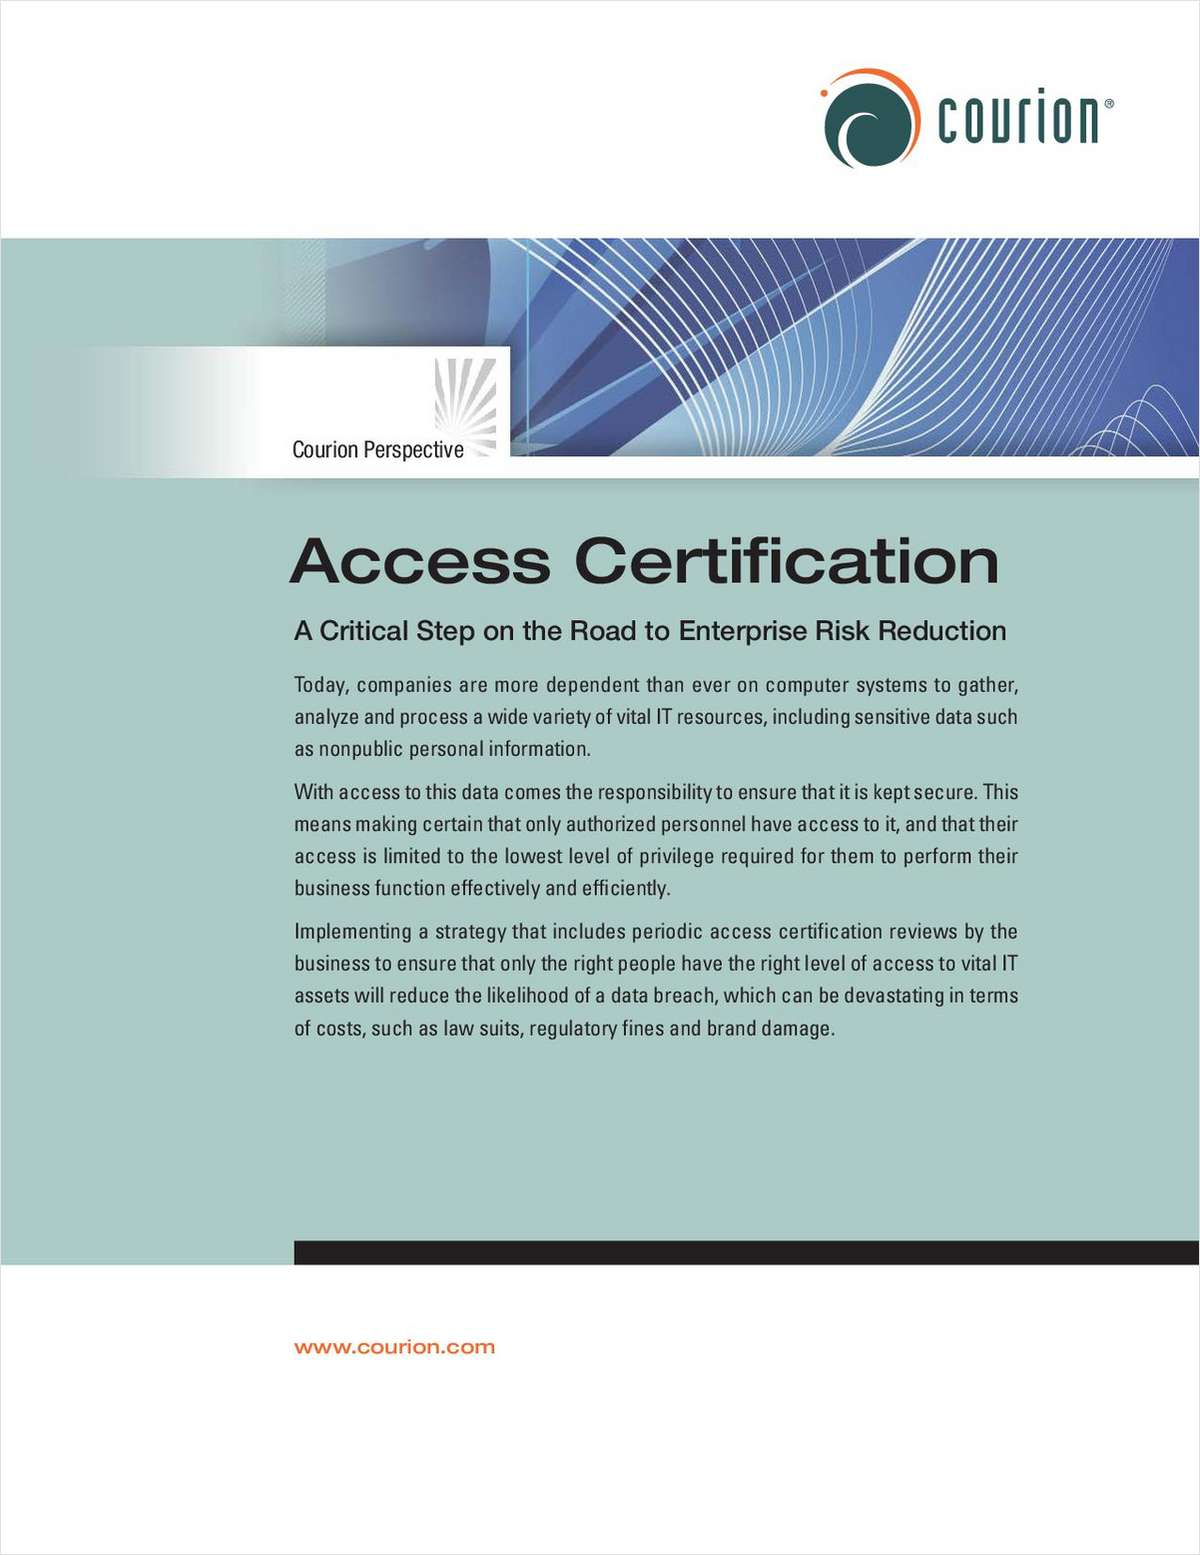 Best Practices for Access Certification